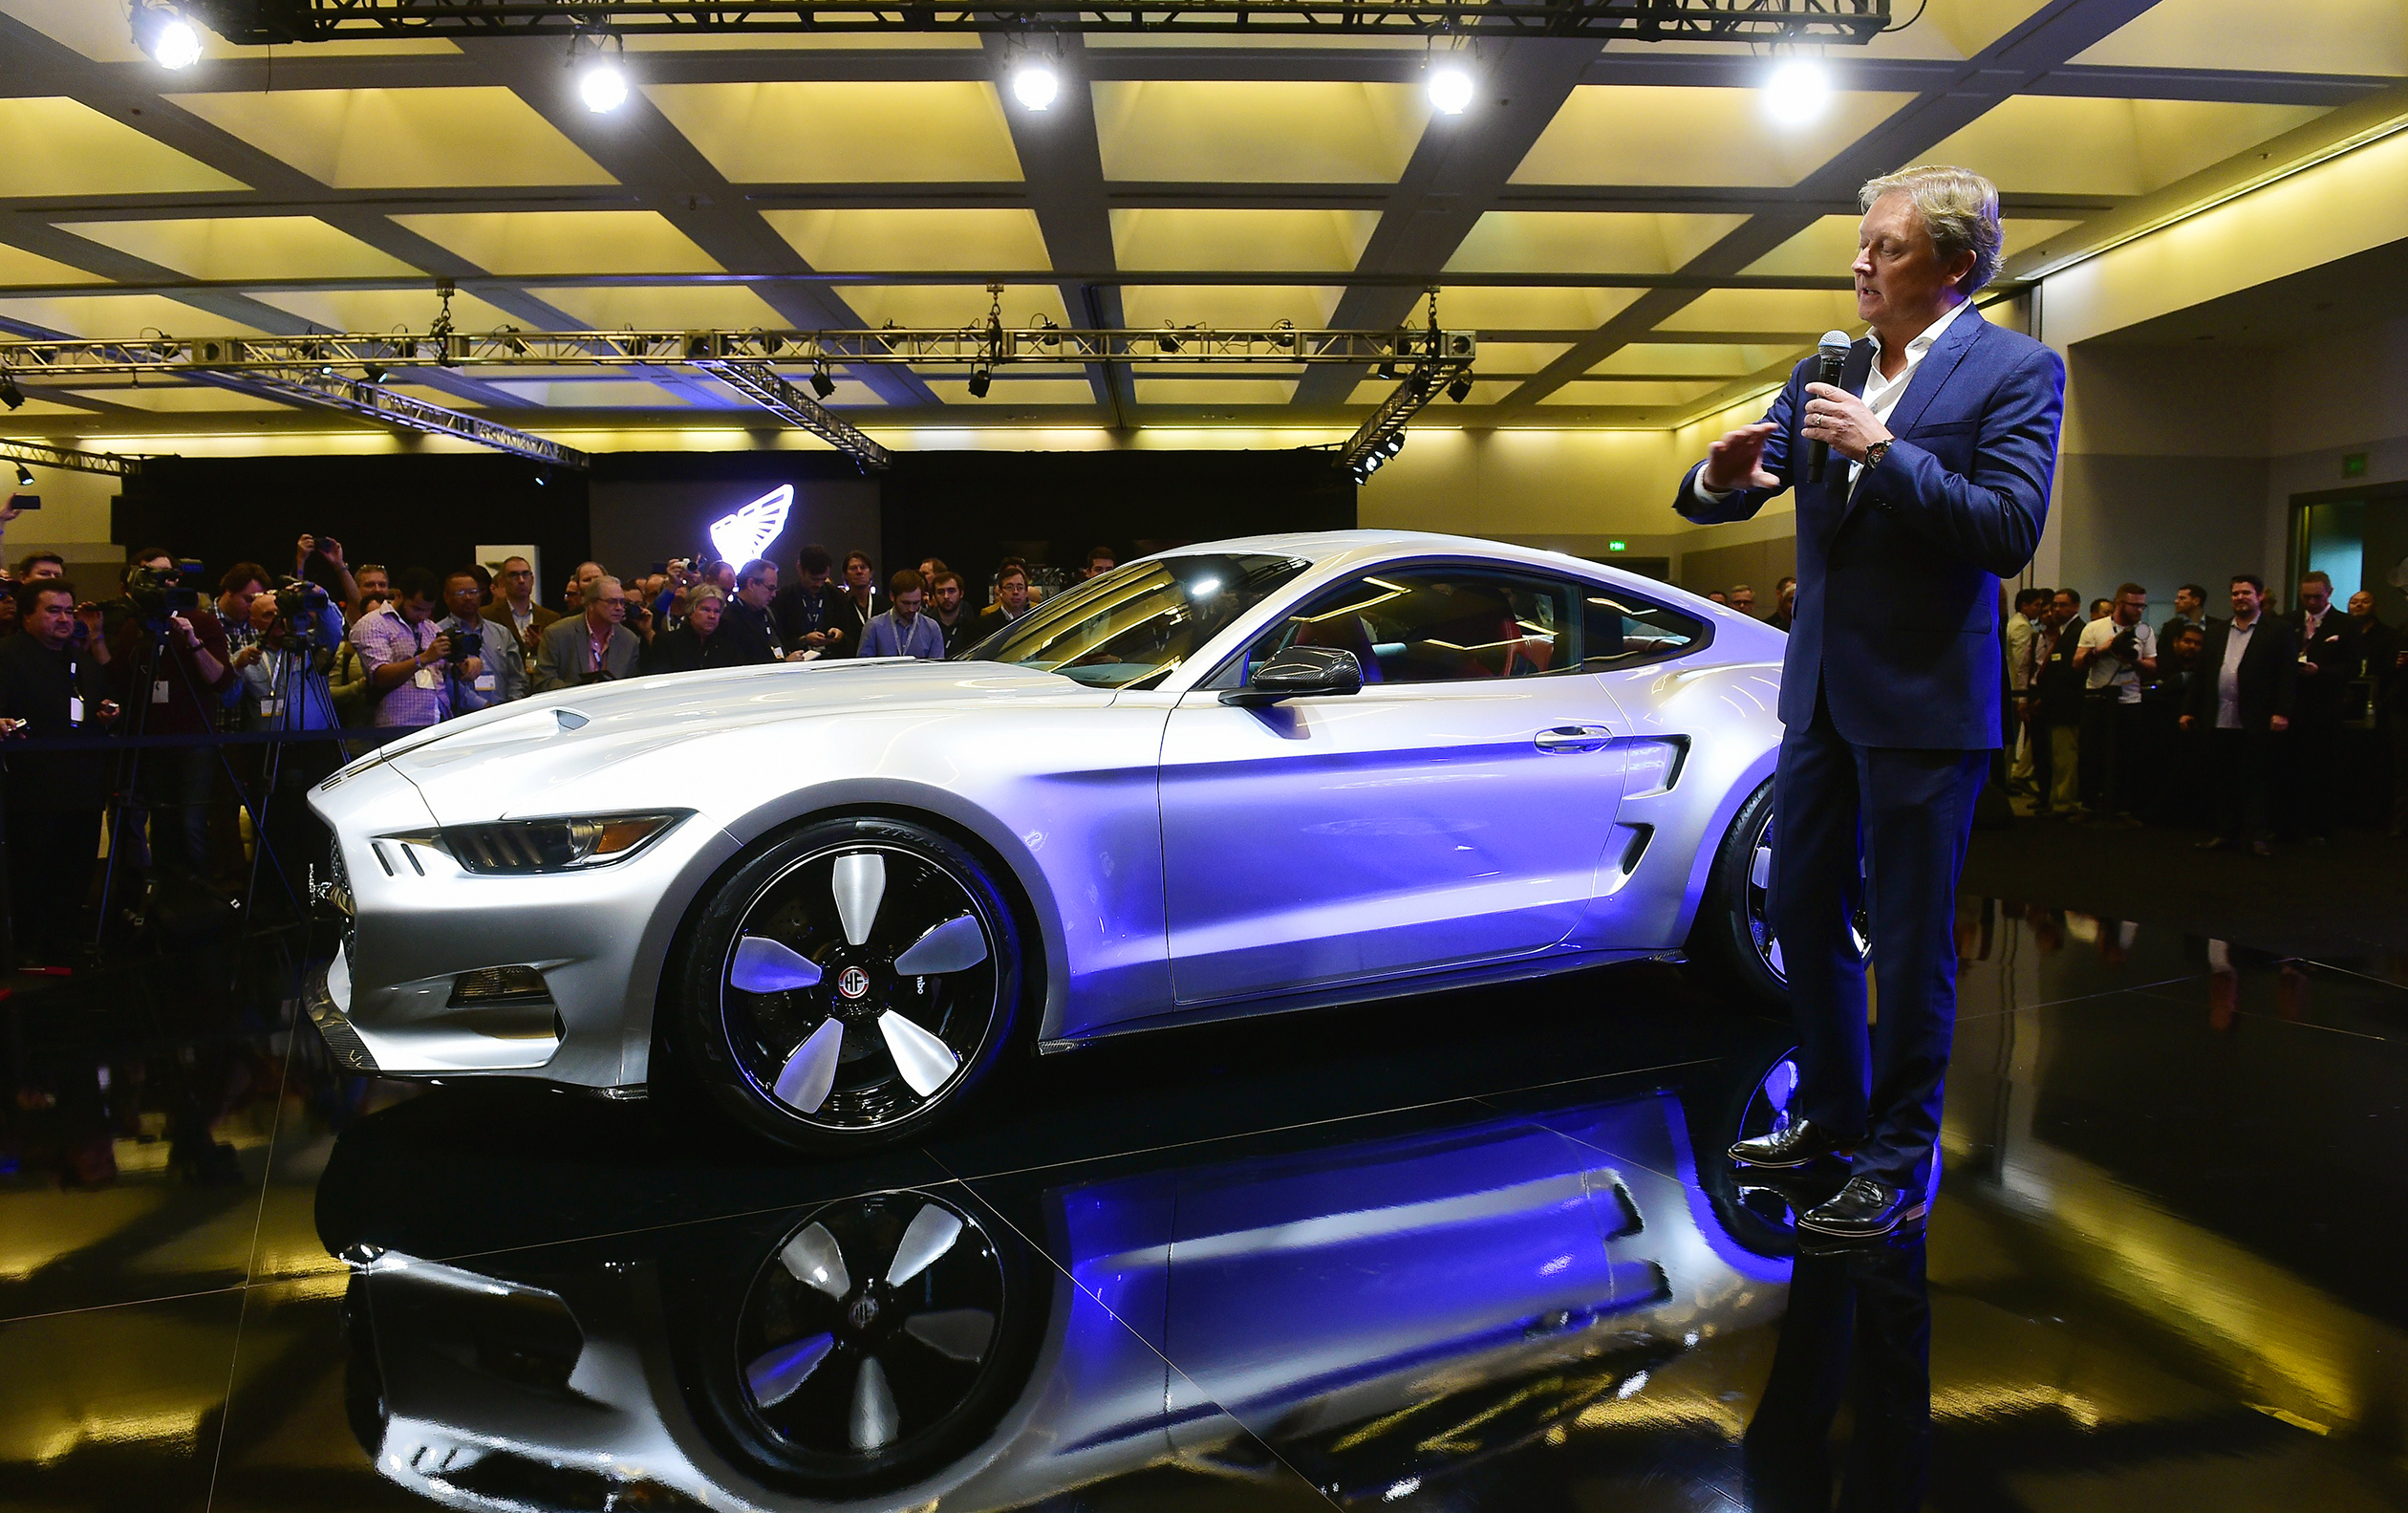 Automobile designer Henrik Fisker speaks at the unveiling of his latest design, the 2015 Galpin Rocket, at the LA Auto Show's press and trade day in Los Angeles November 20, 2014. The LA Auto Show opens to the public on November 21 will run until November 30. AFP PHOTO/Frederic J. BROWN (Photo credit should read FREDERIC J. BROWN/AFP/Getty Images)